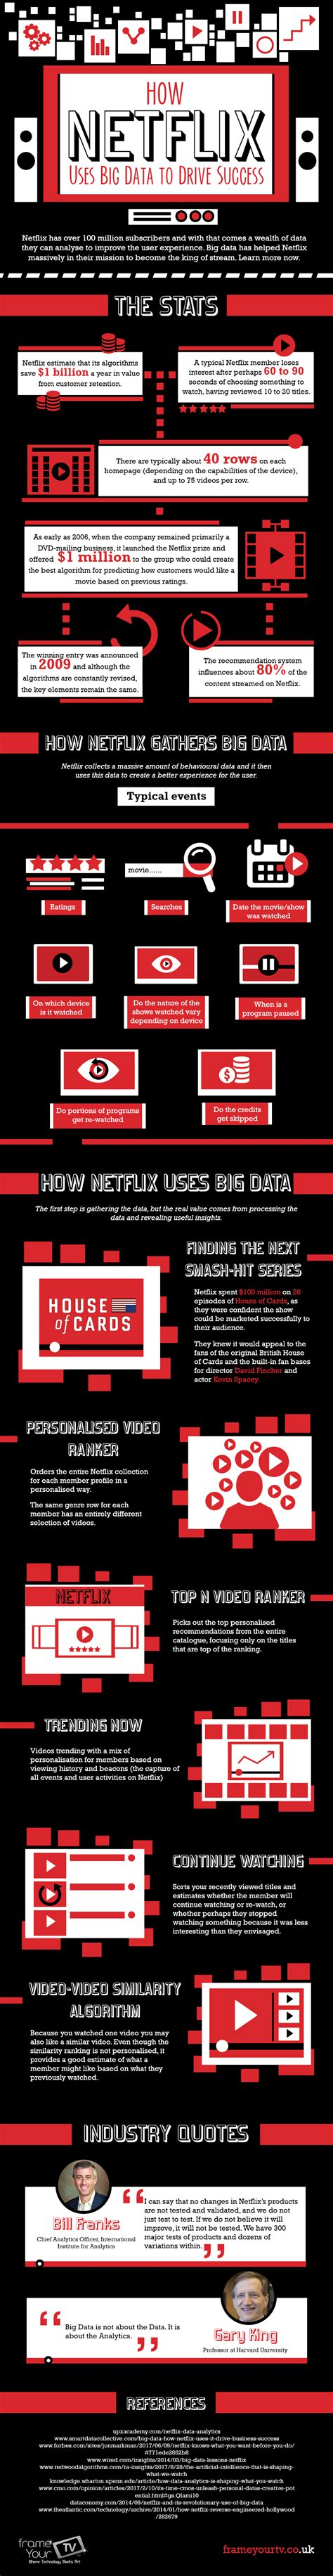 even students description new subscribers 1 films watch newest was how netflix uses big data to drive success infographic